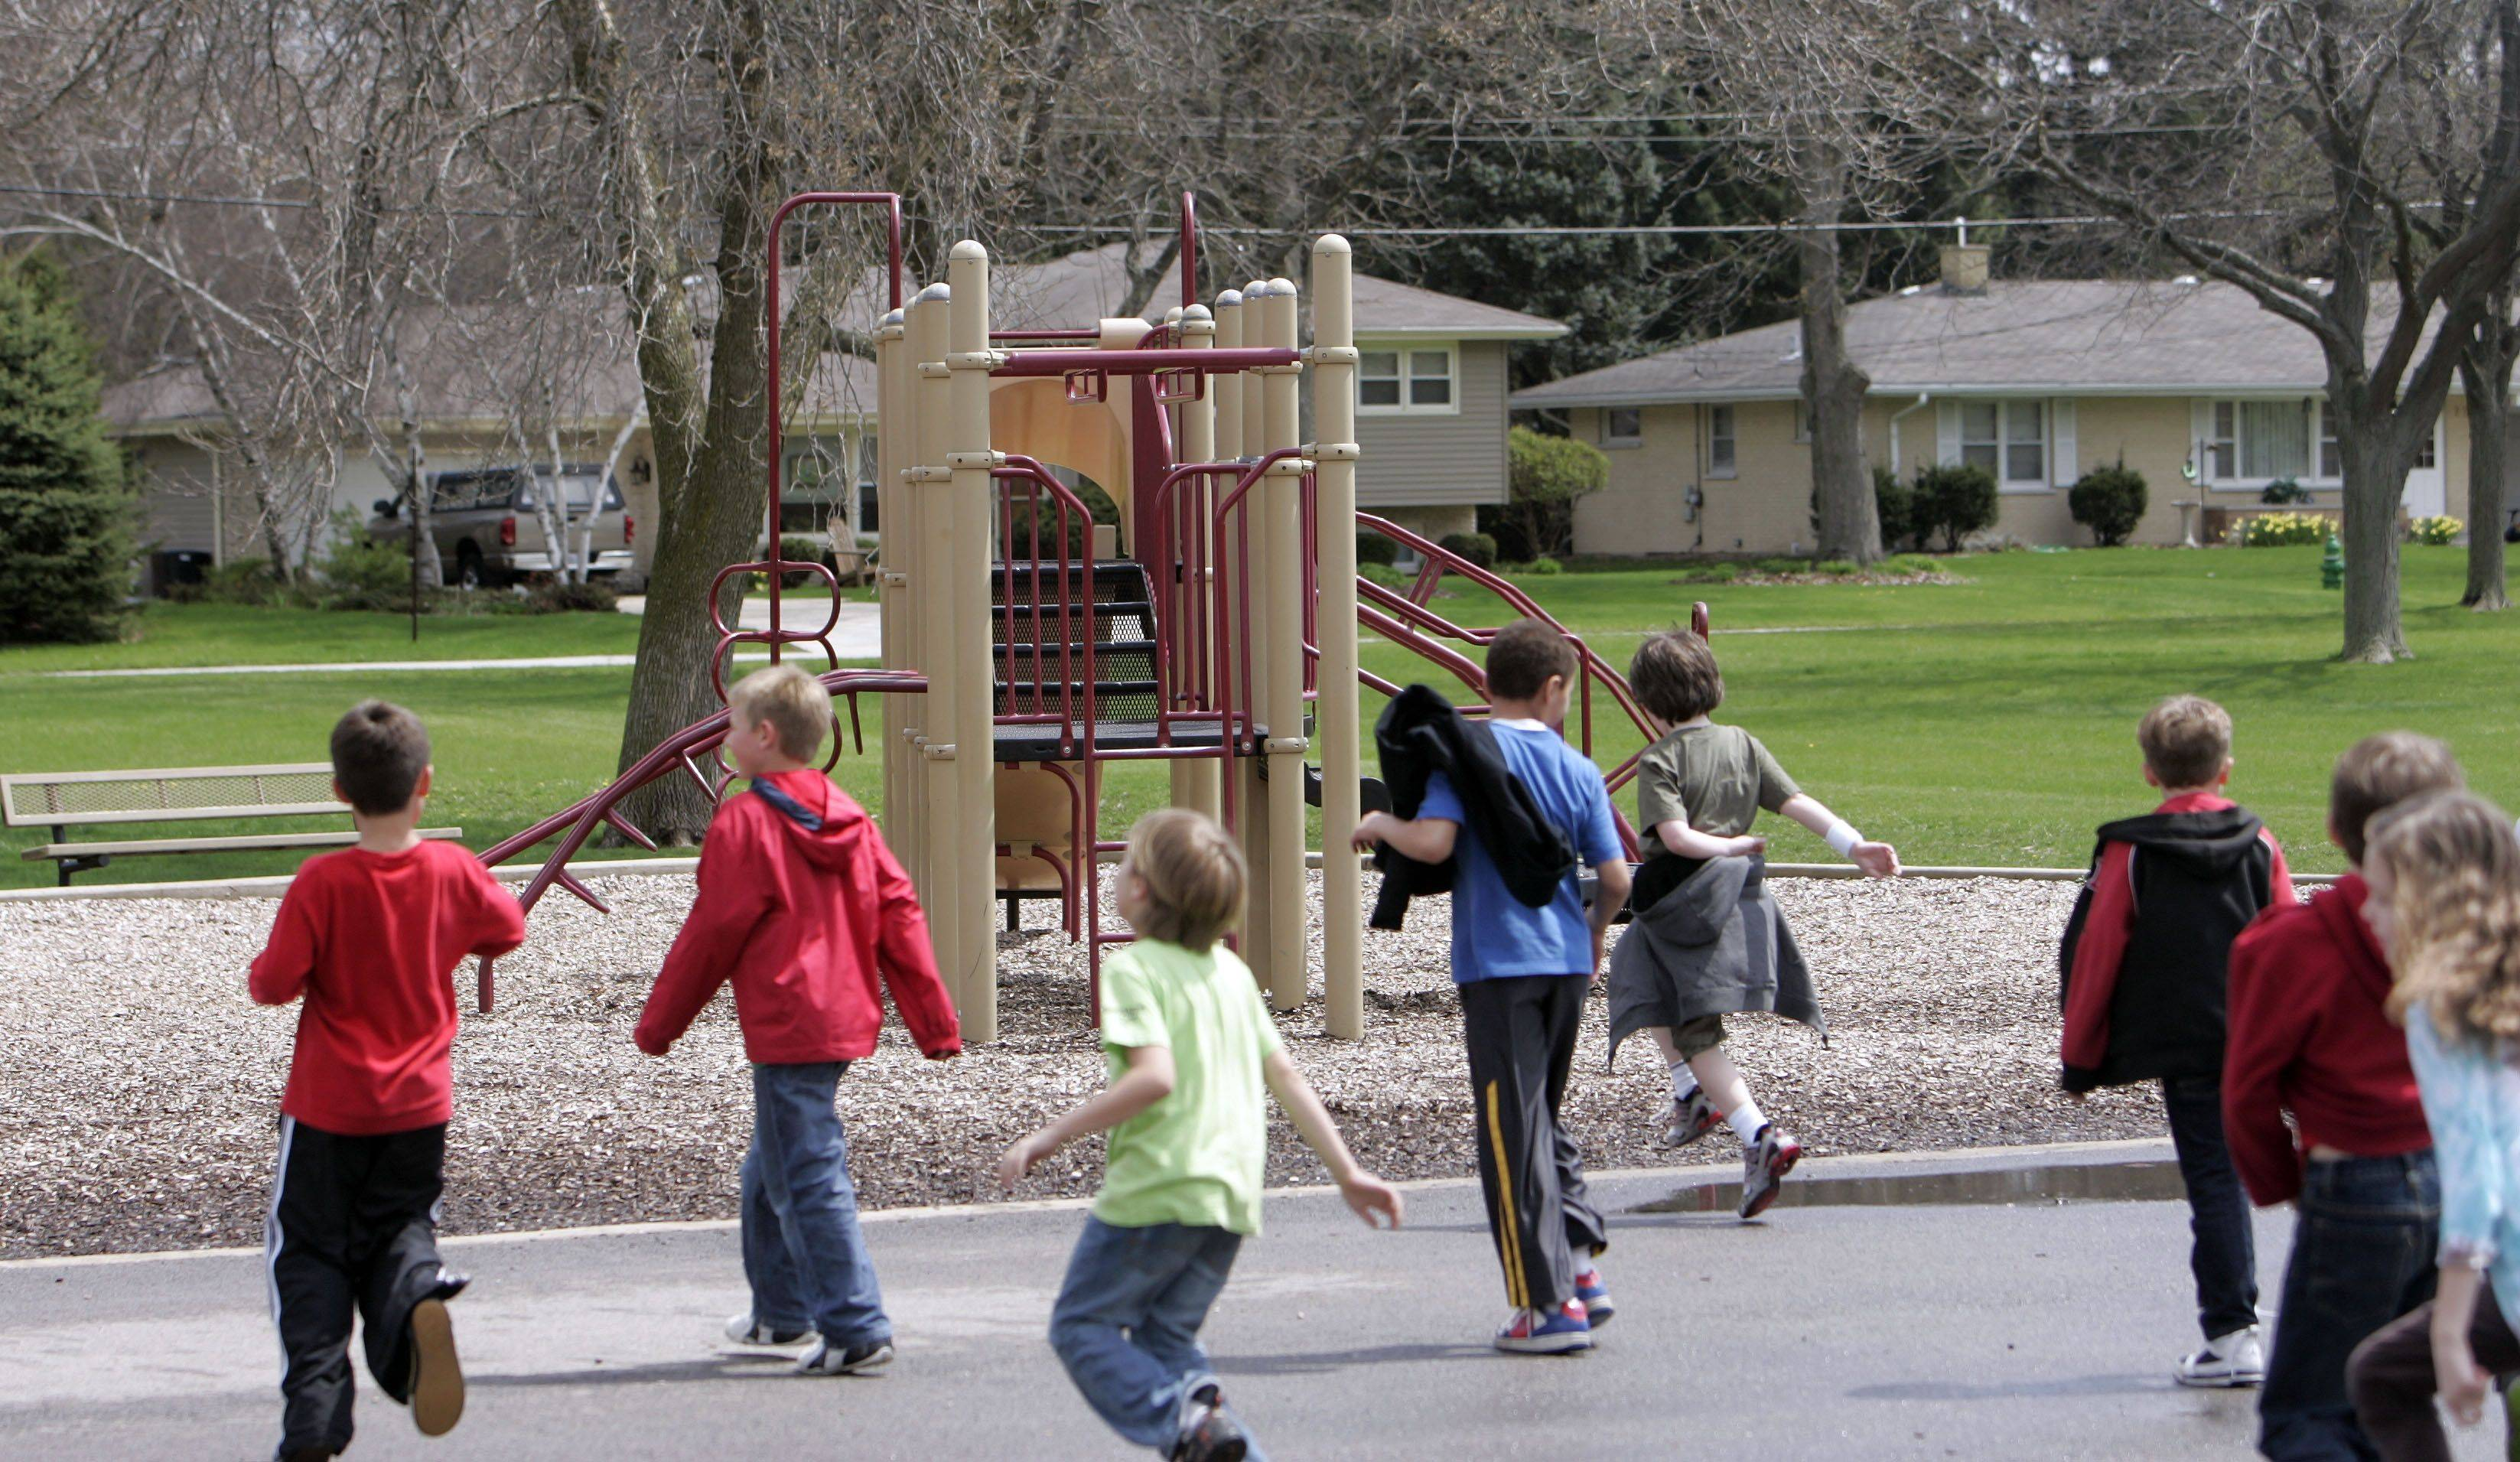 Kane County group awards grants to help kids get fit